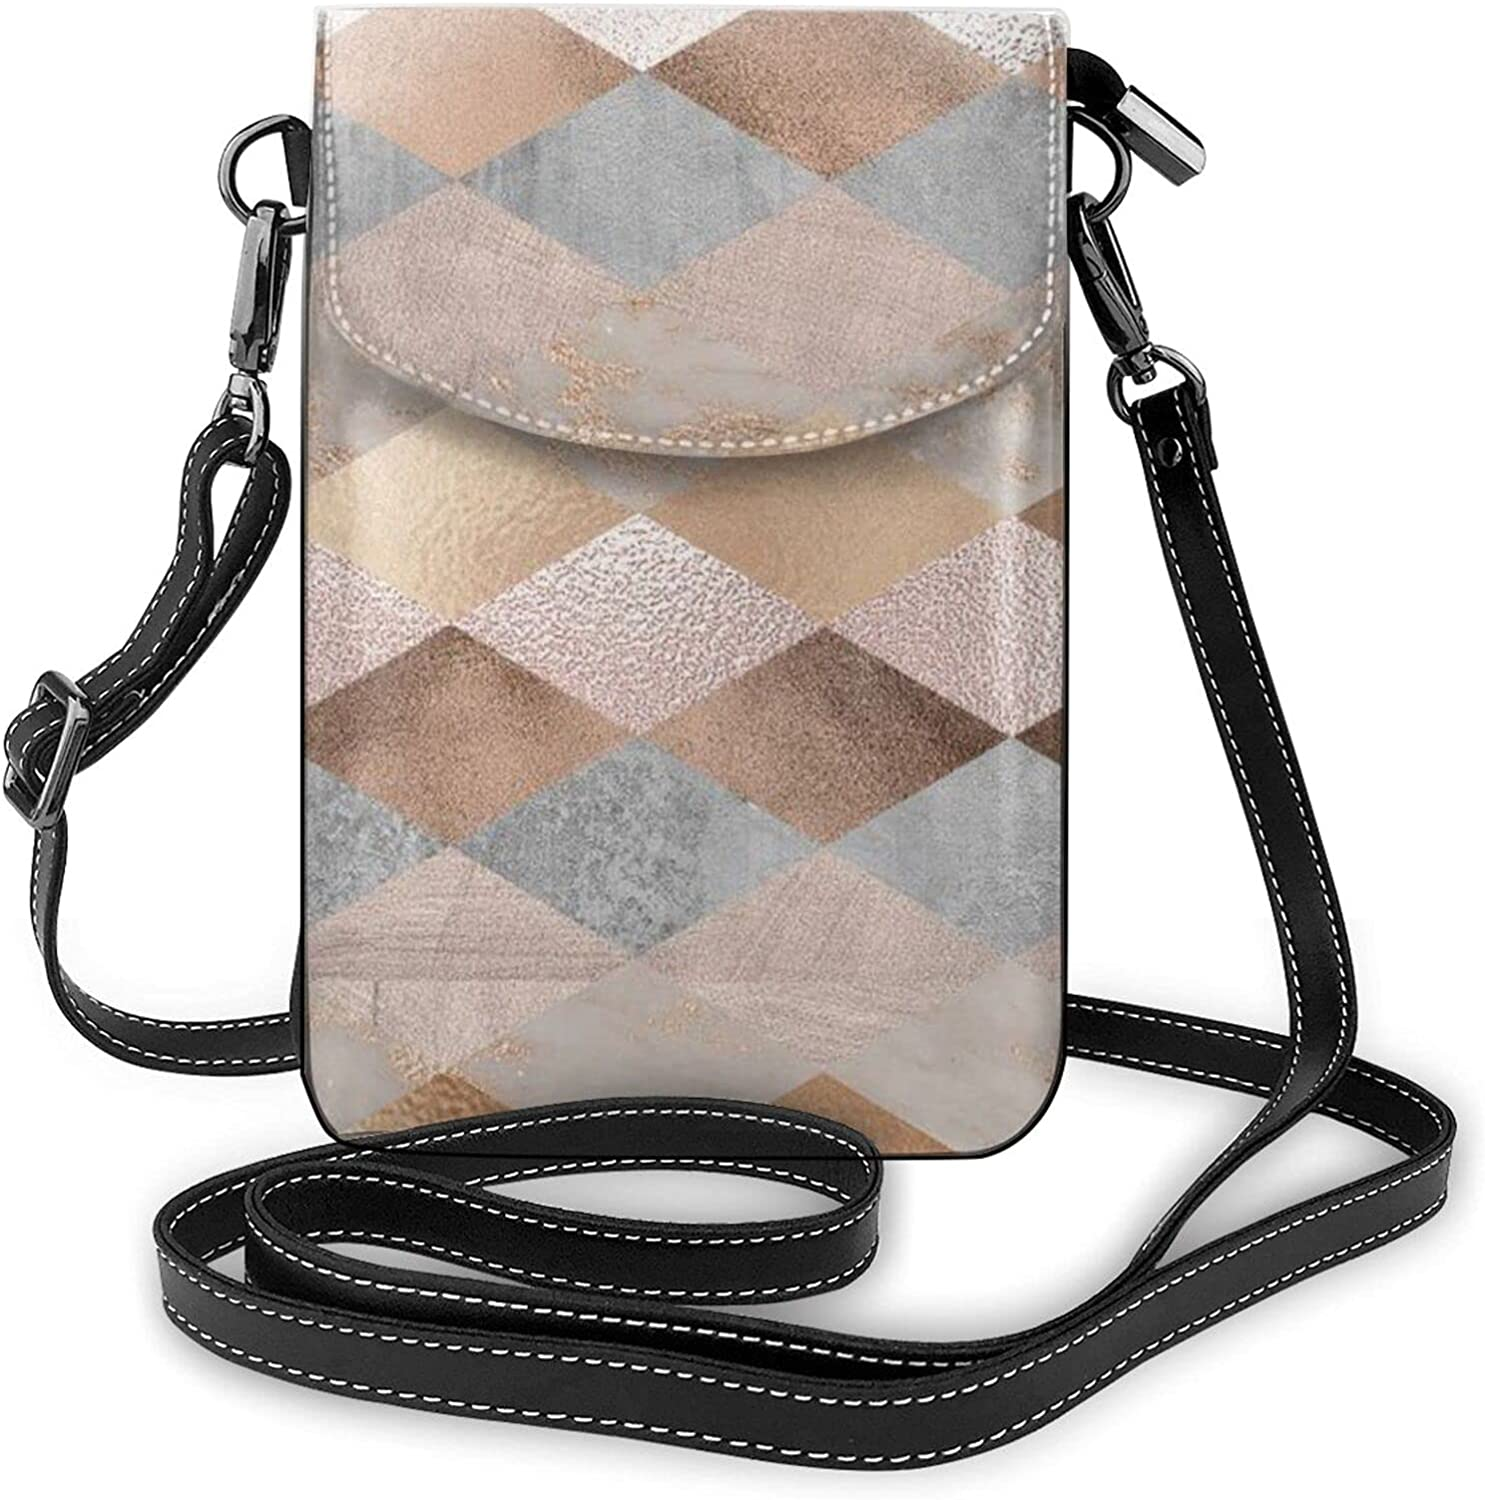 Lightweight PU Leather Handbag Popular shop is the lowest price challenge Max 52% OFF Small Crossbody Pho Mini Cell Bag